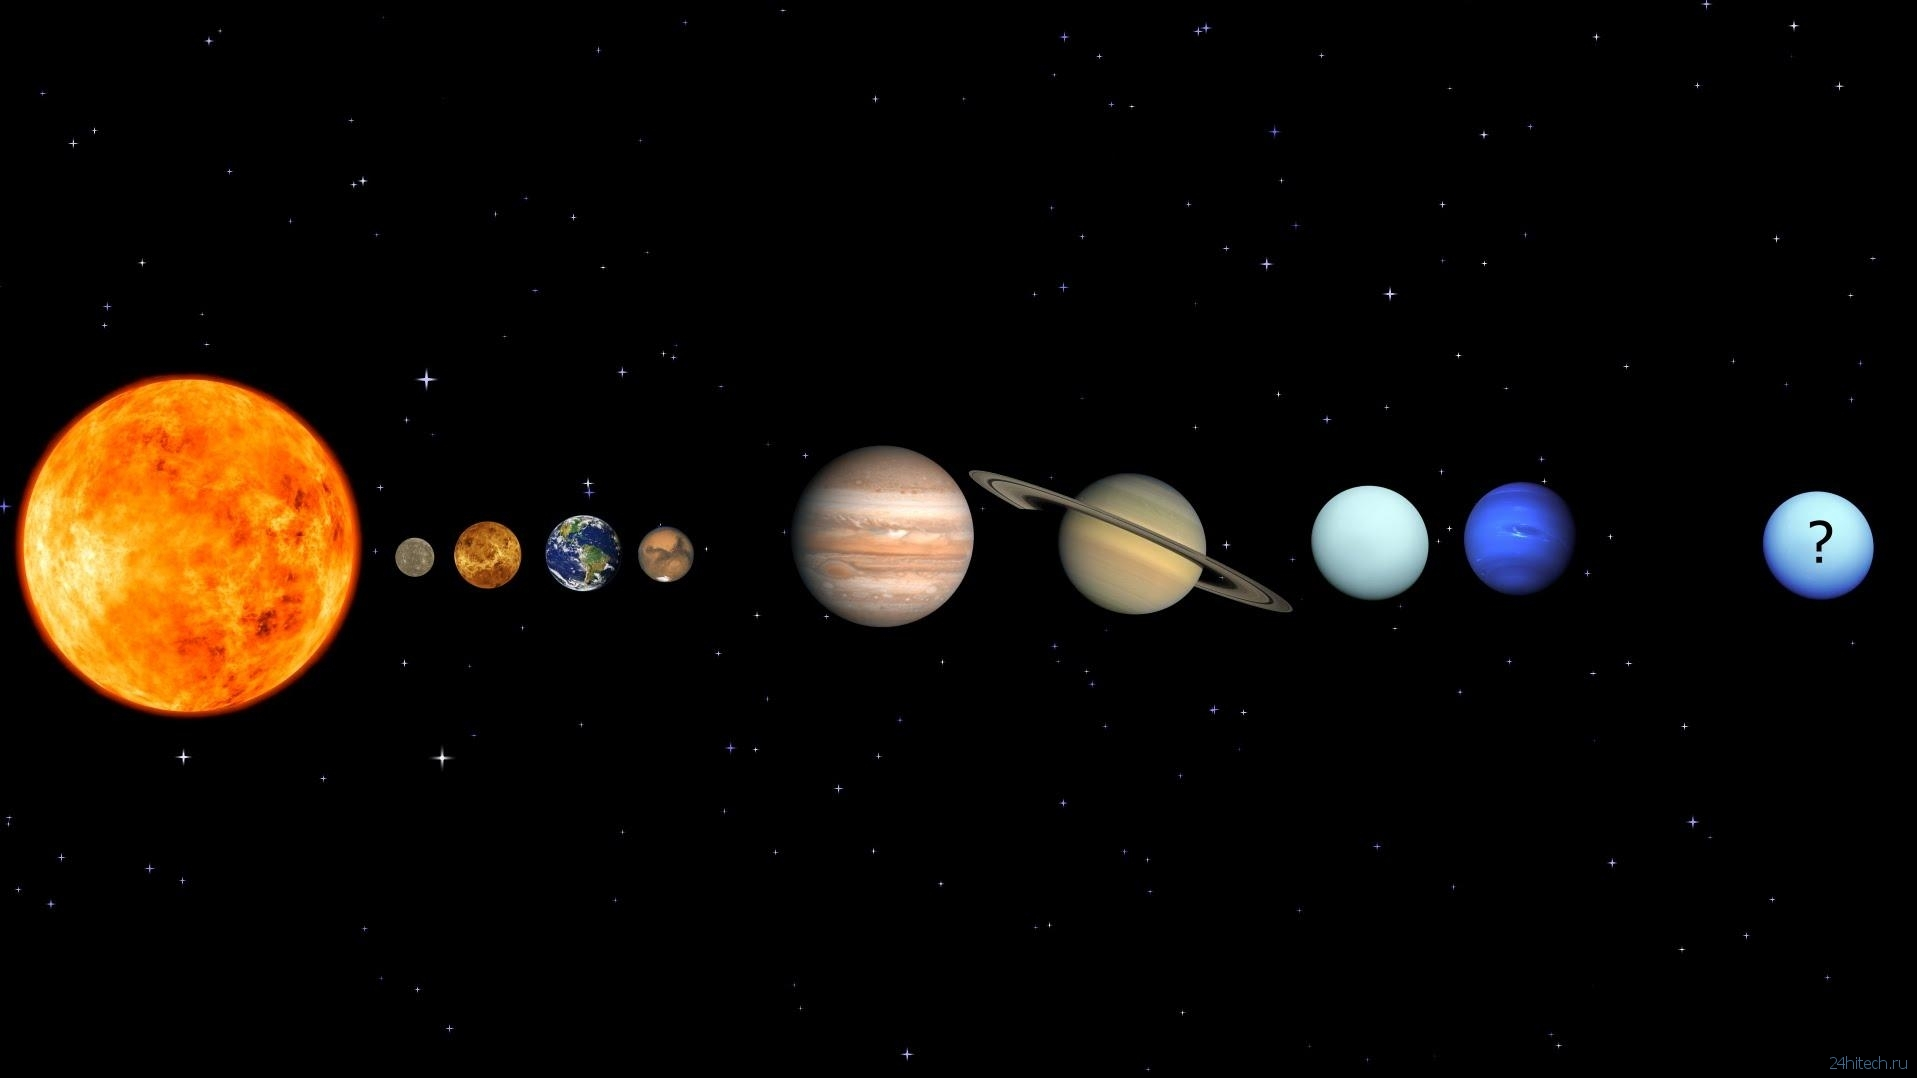 an analysis of the planet pluto in solar system There could be at least two unknown planets - members of our own solar system - hidden well beyond pluto that's according to new calculations by scientists in spain and the uk.